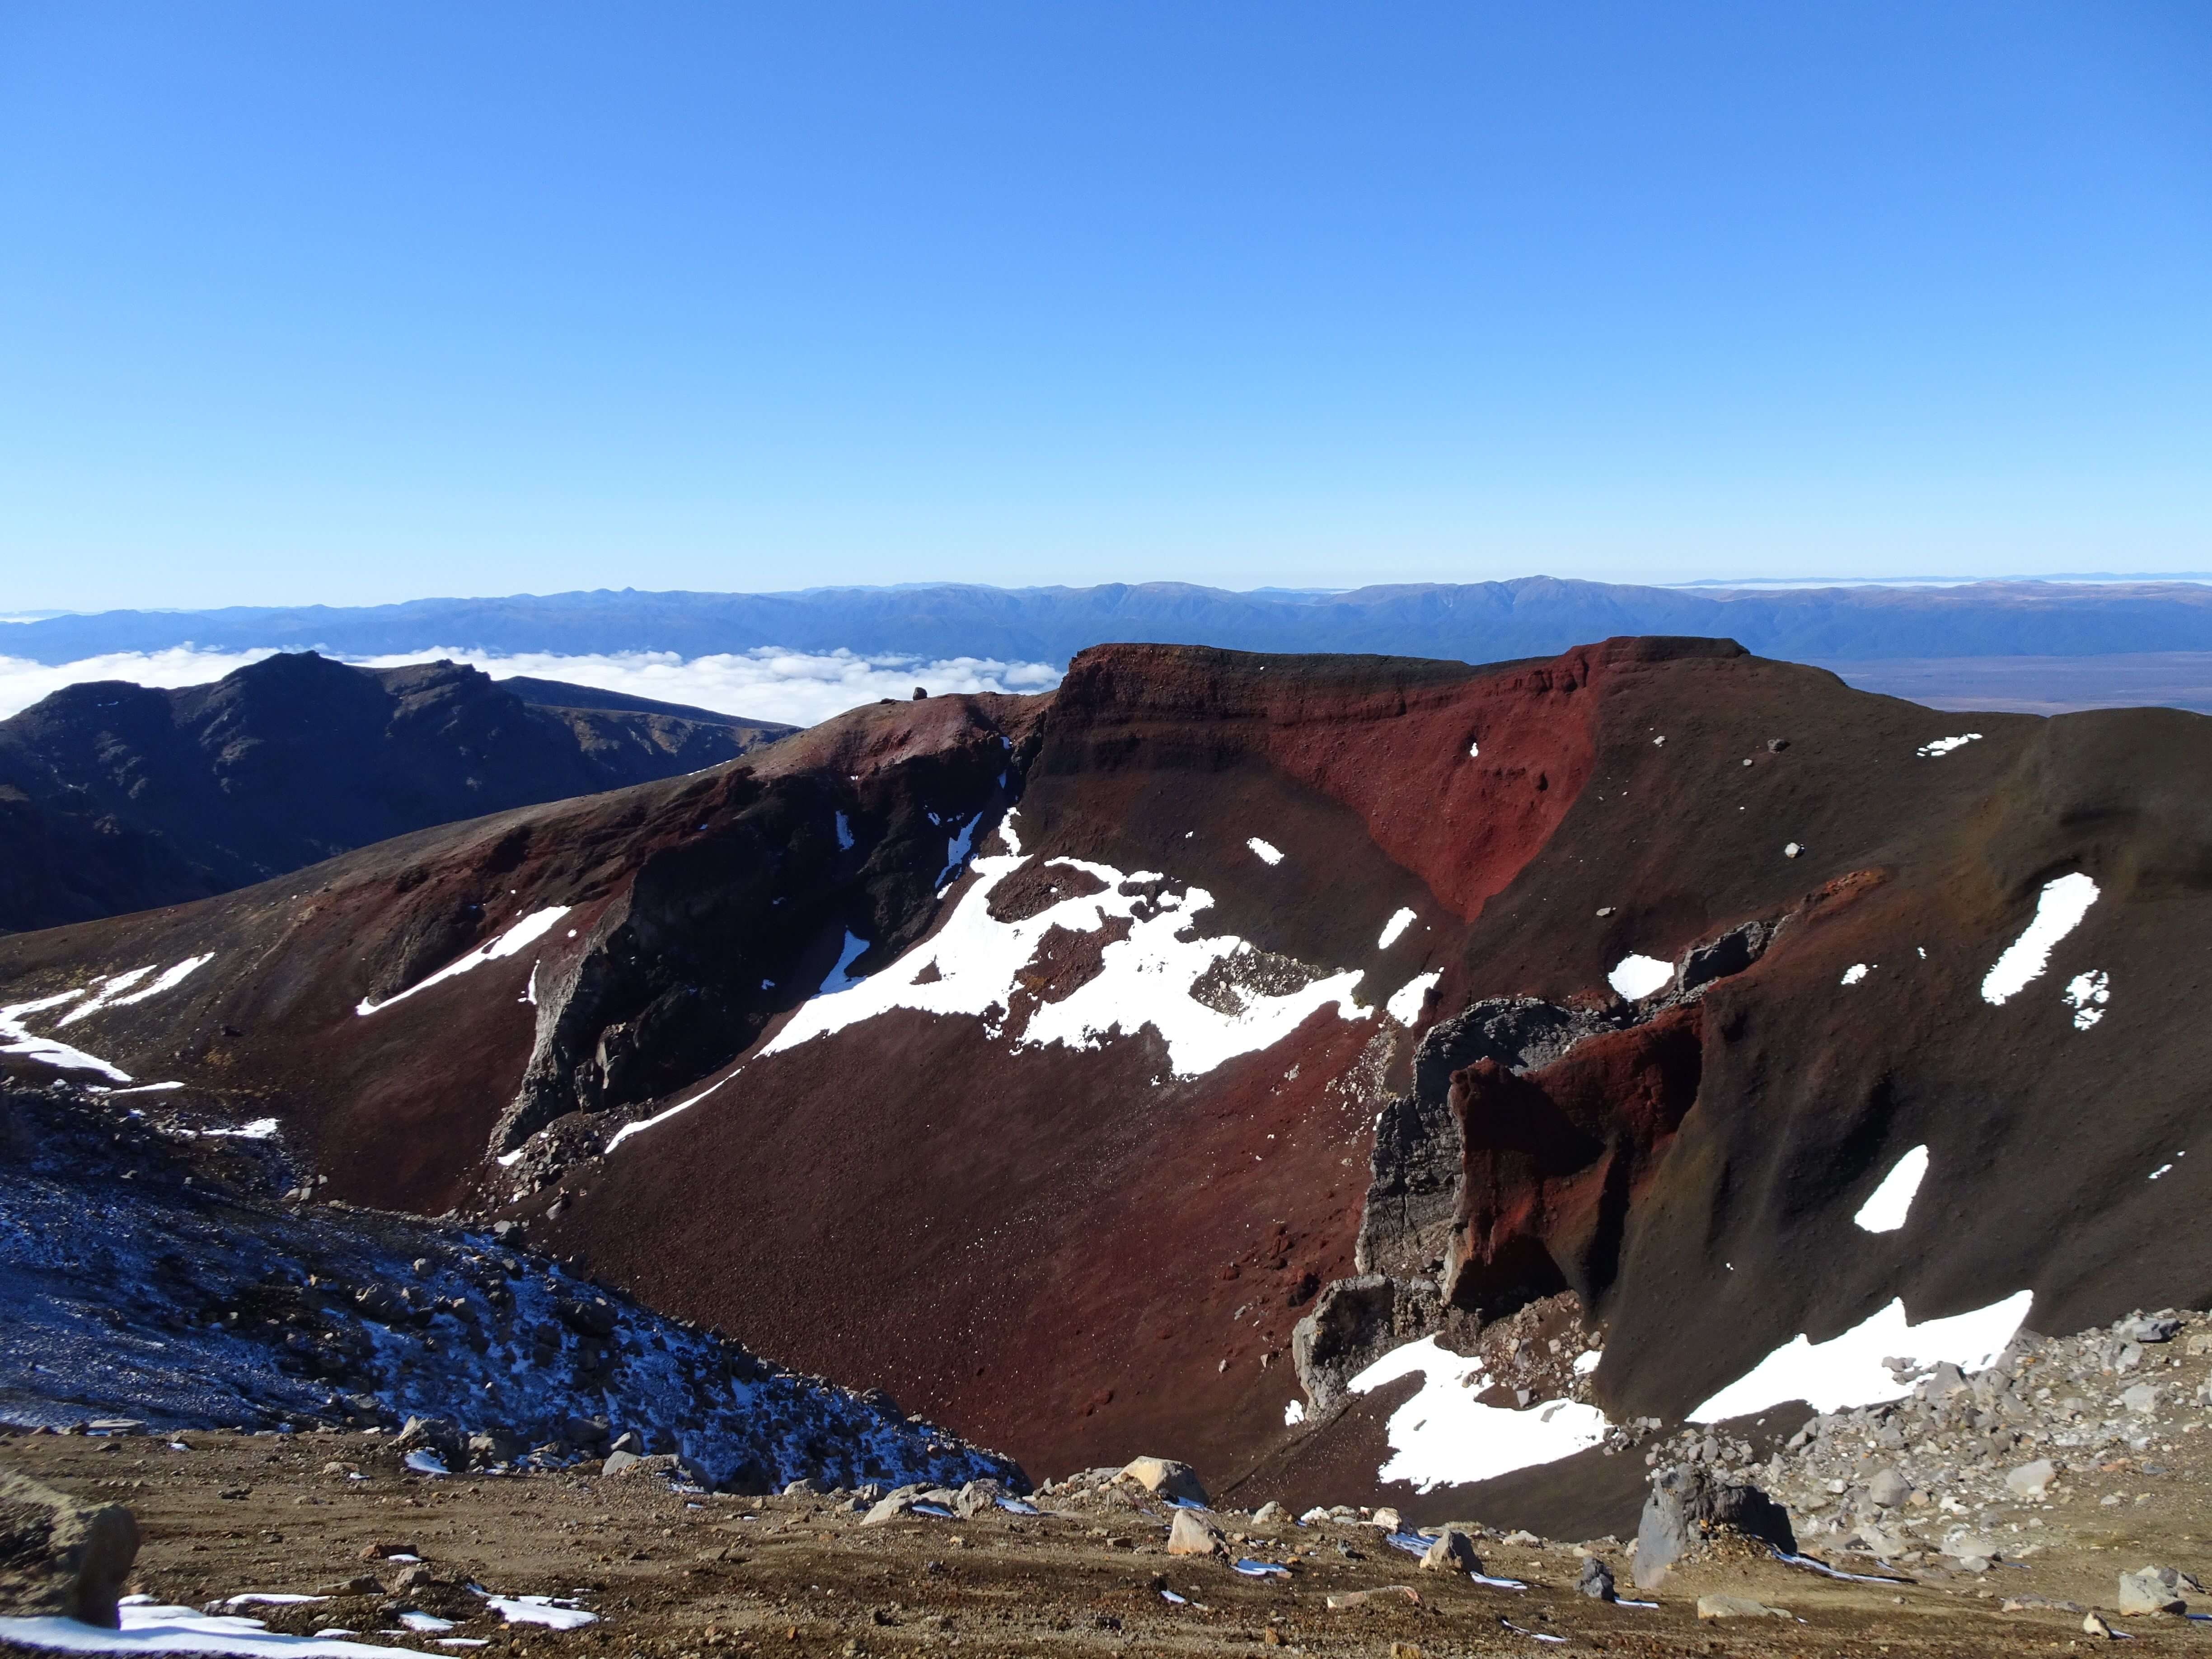 Travel-photography-gallery-Red-cratere-volcano-Tongariro